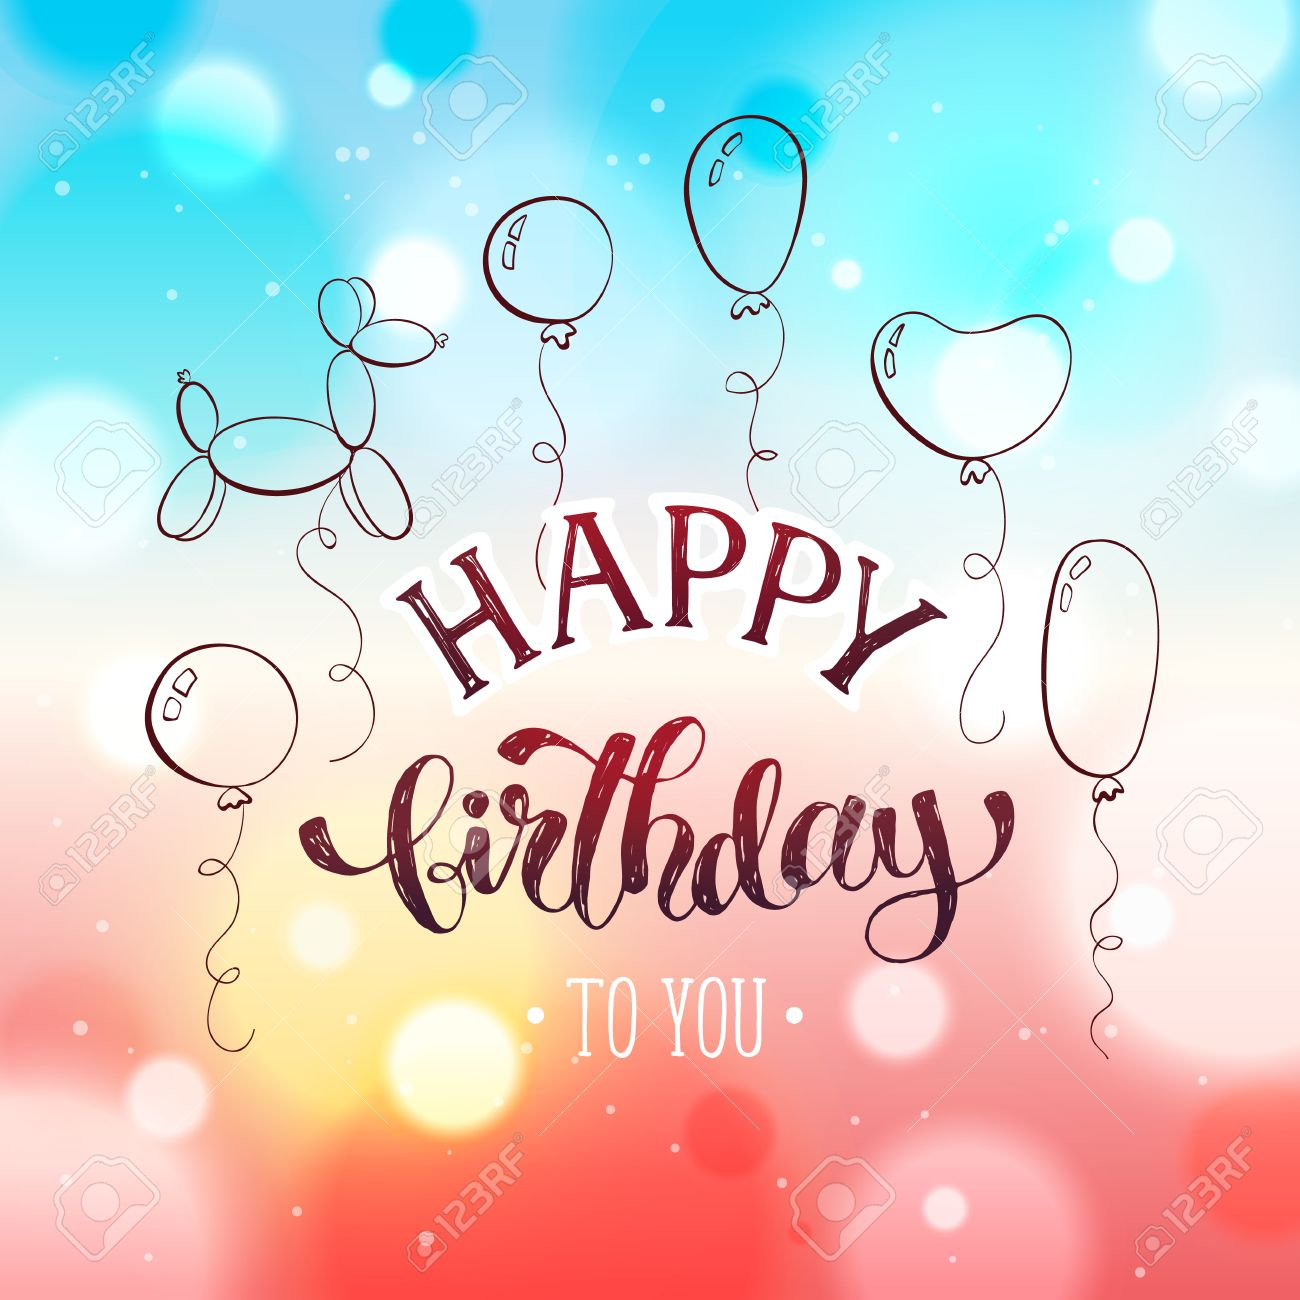 Happy Birthday Greeting Card Hand Drawn Calligraphy On Blurred